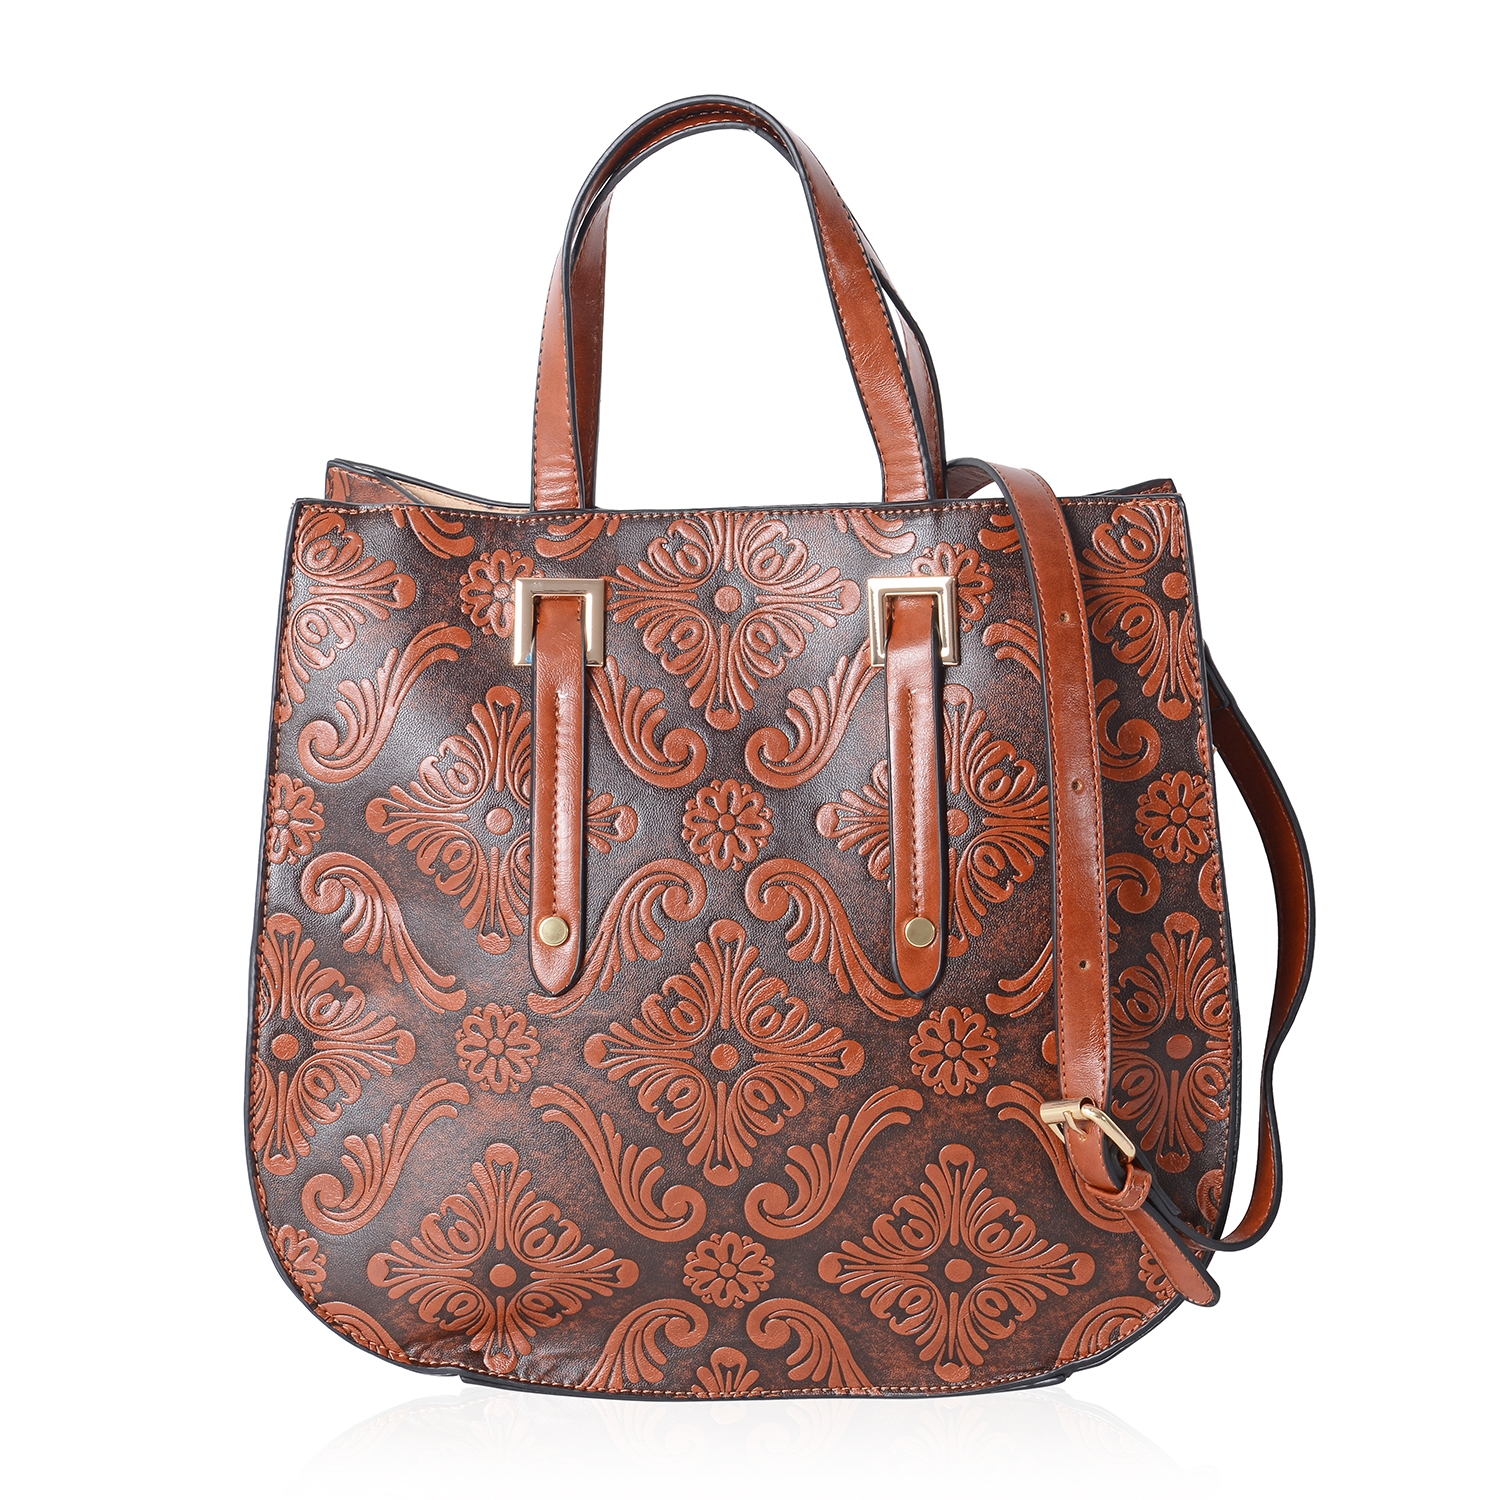 c0e30d46f3 Camel Faux Leather Embossed Baroque Pattern Saddle Tote Bag (11x5.5x11.5  in)